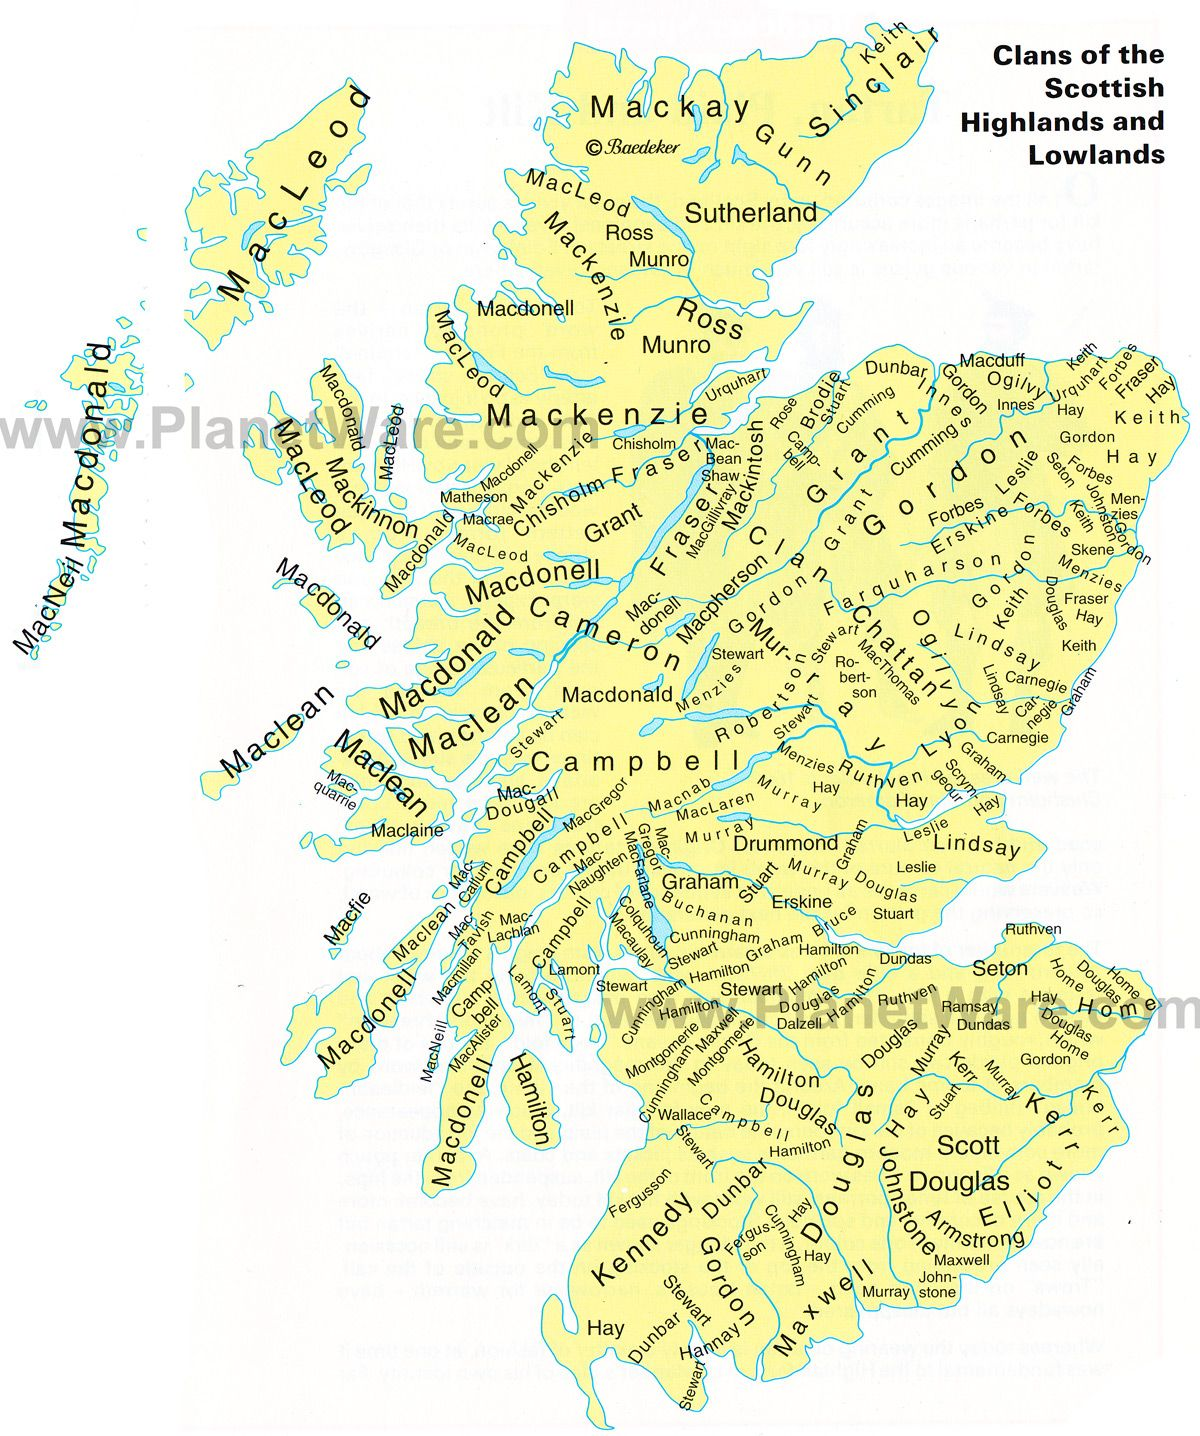 Scottish Clan Map Scottish clan | Map of Clans of the Scottish Highlands and